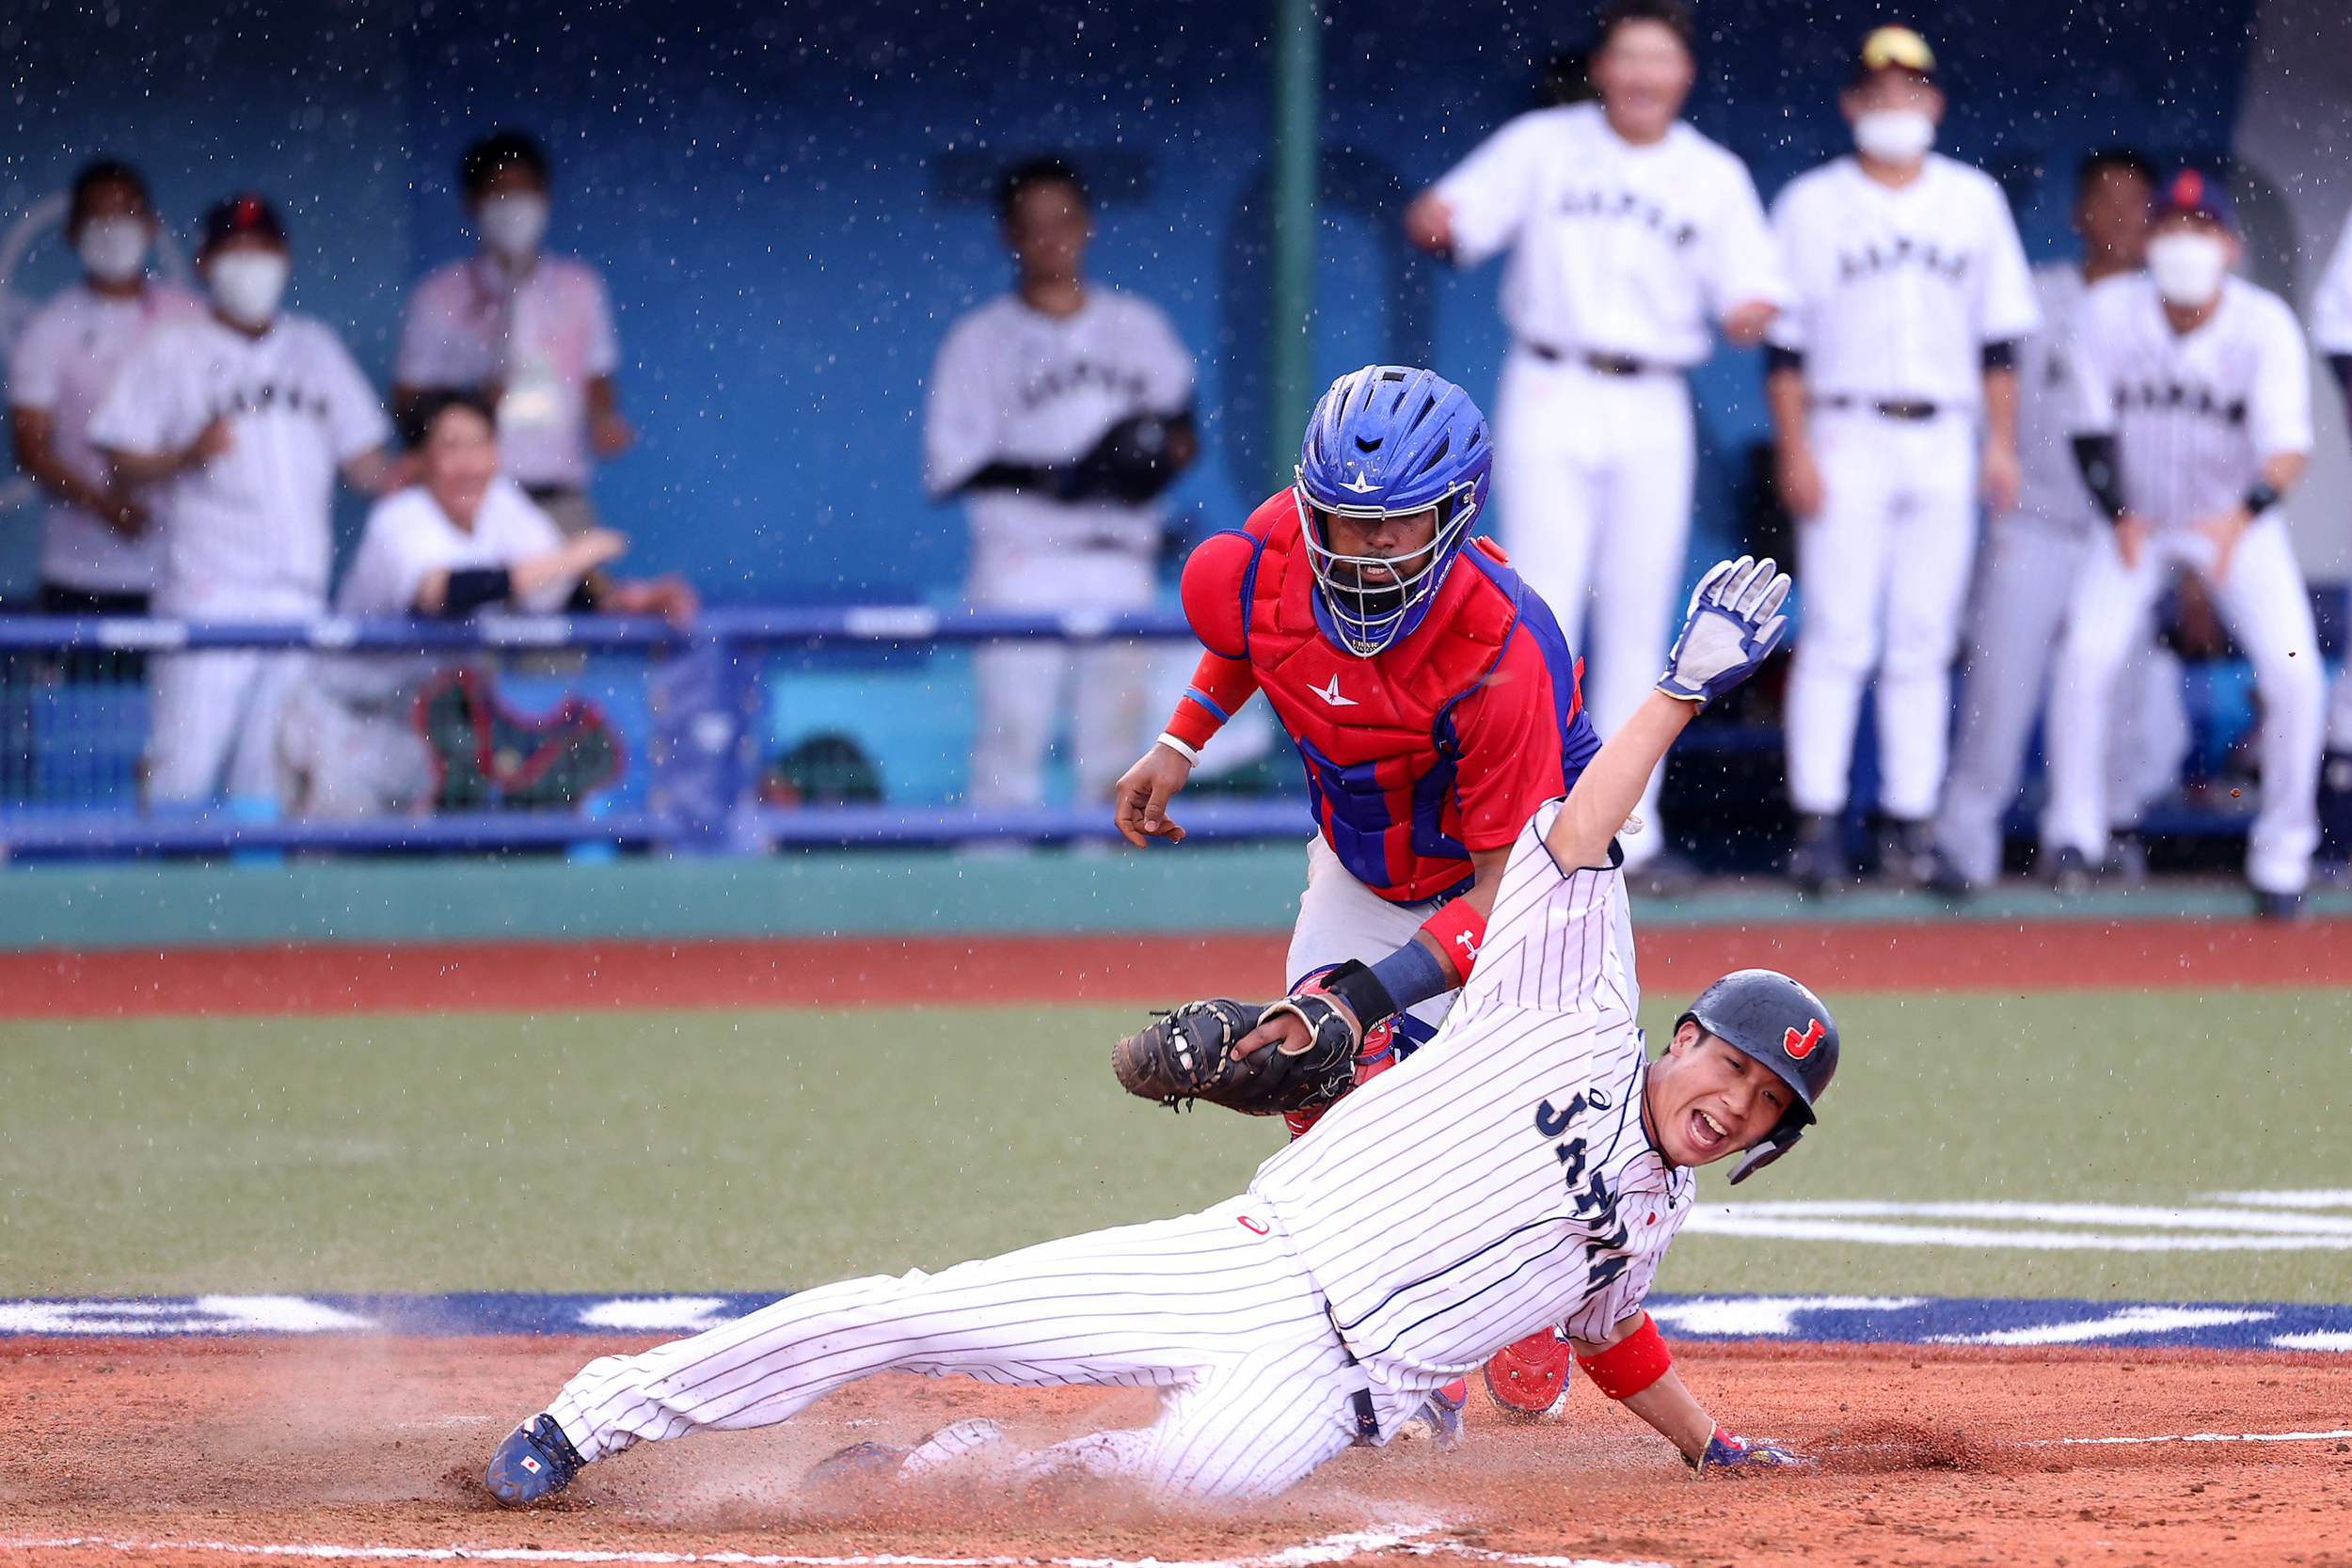 Baseball is back: Host Japan welcomes Olympics return with walk-off win